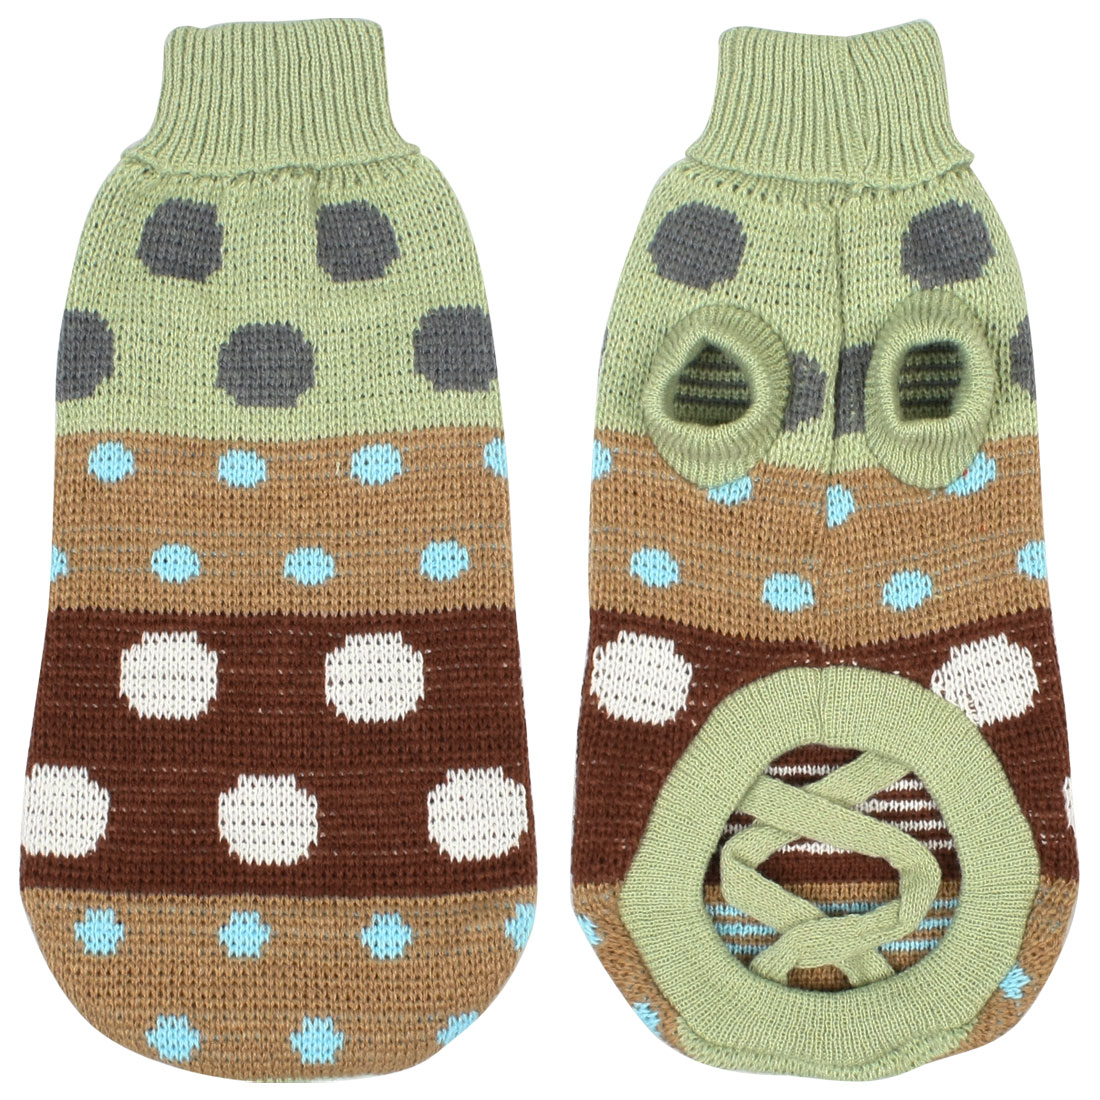 Winter Turtleneck Multicolor Polka Dot Pet Dog Sweater Apparel Pale Green M